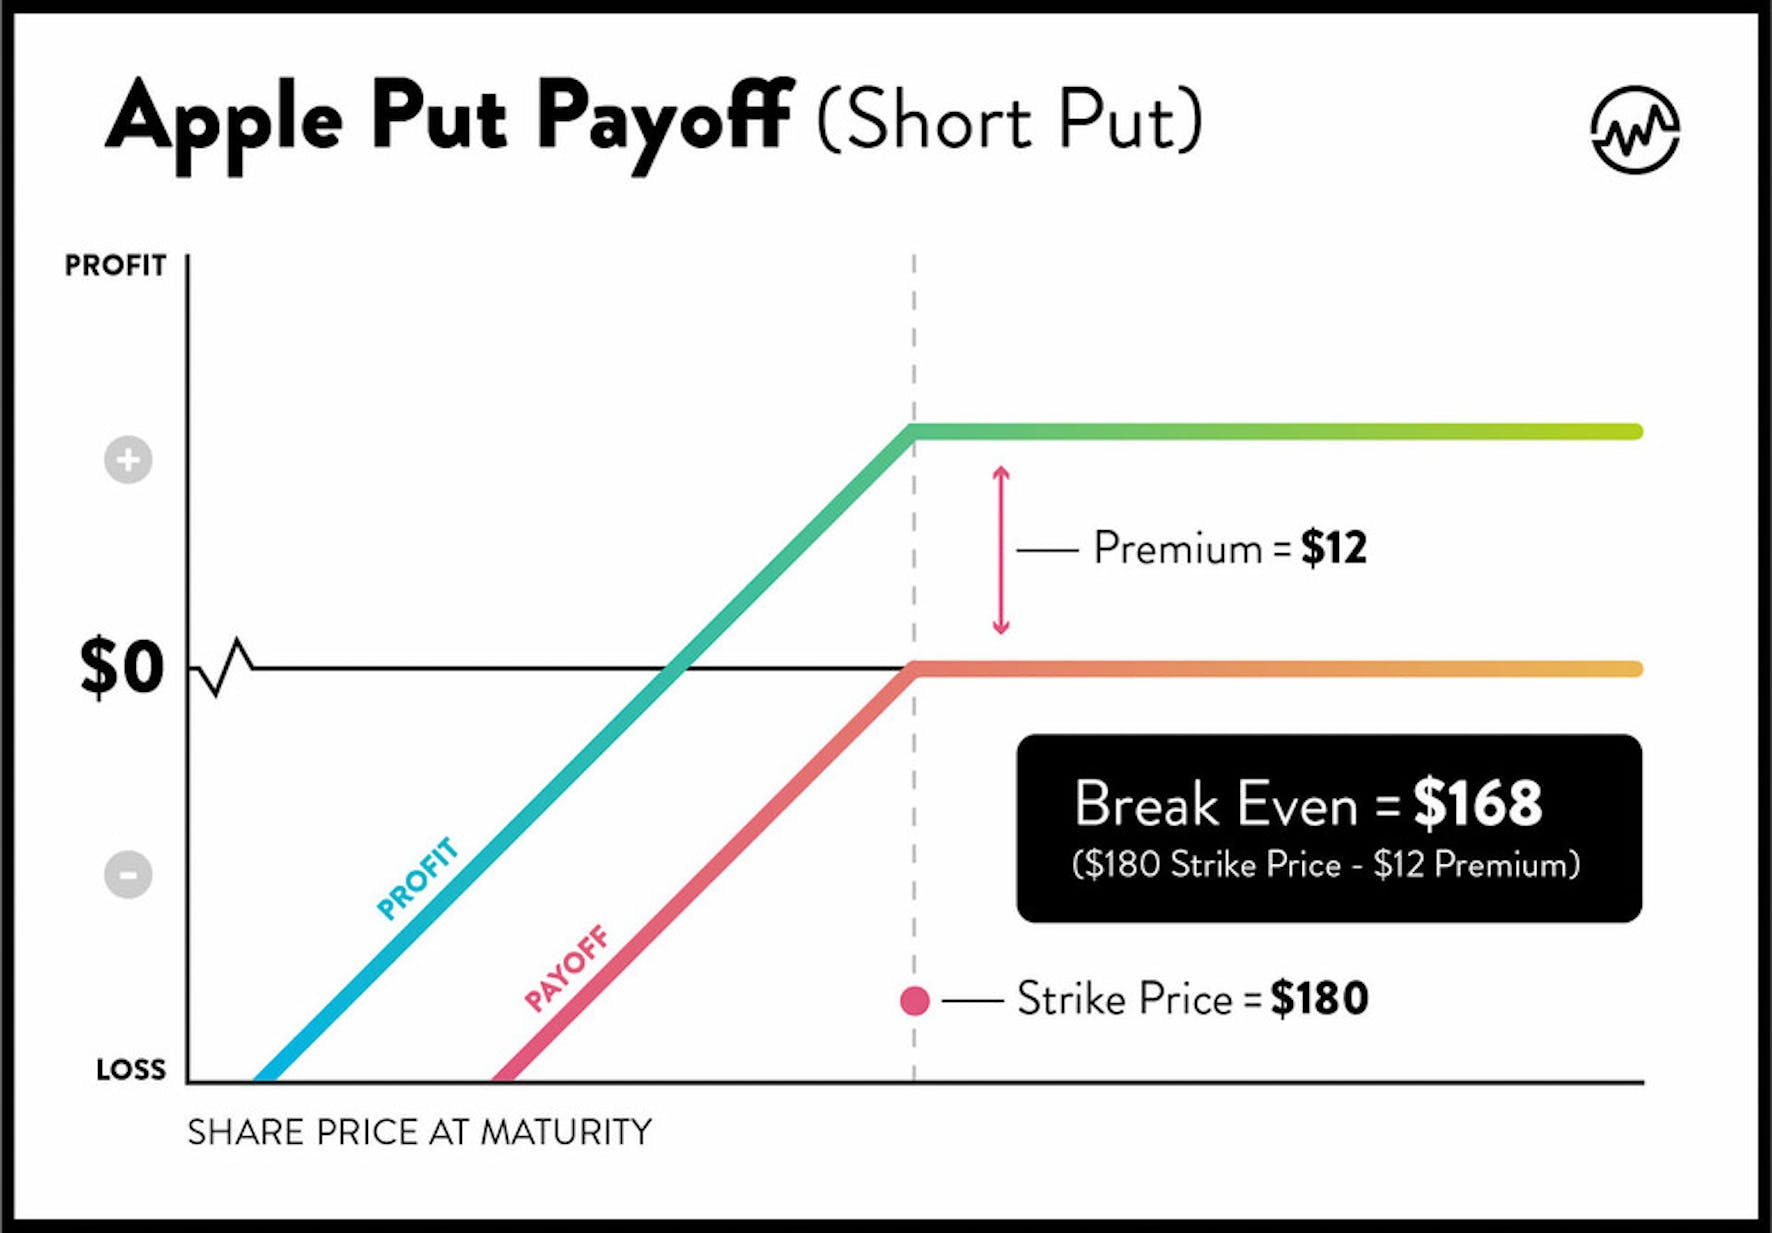 Selling options for income: Apple put chart demonstrates potential payoff in an option trading